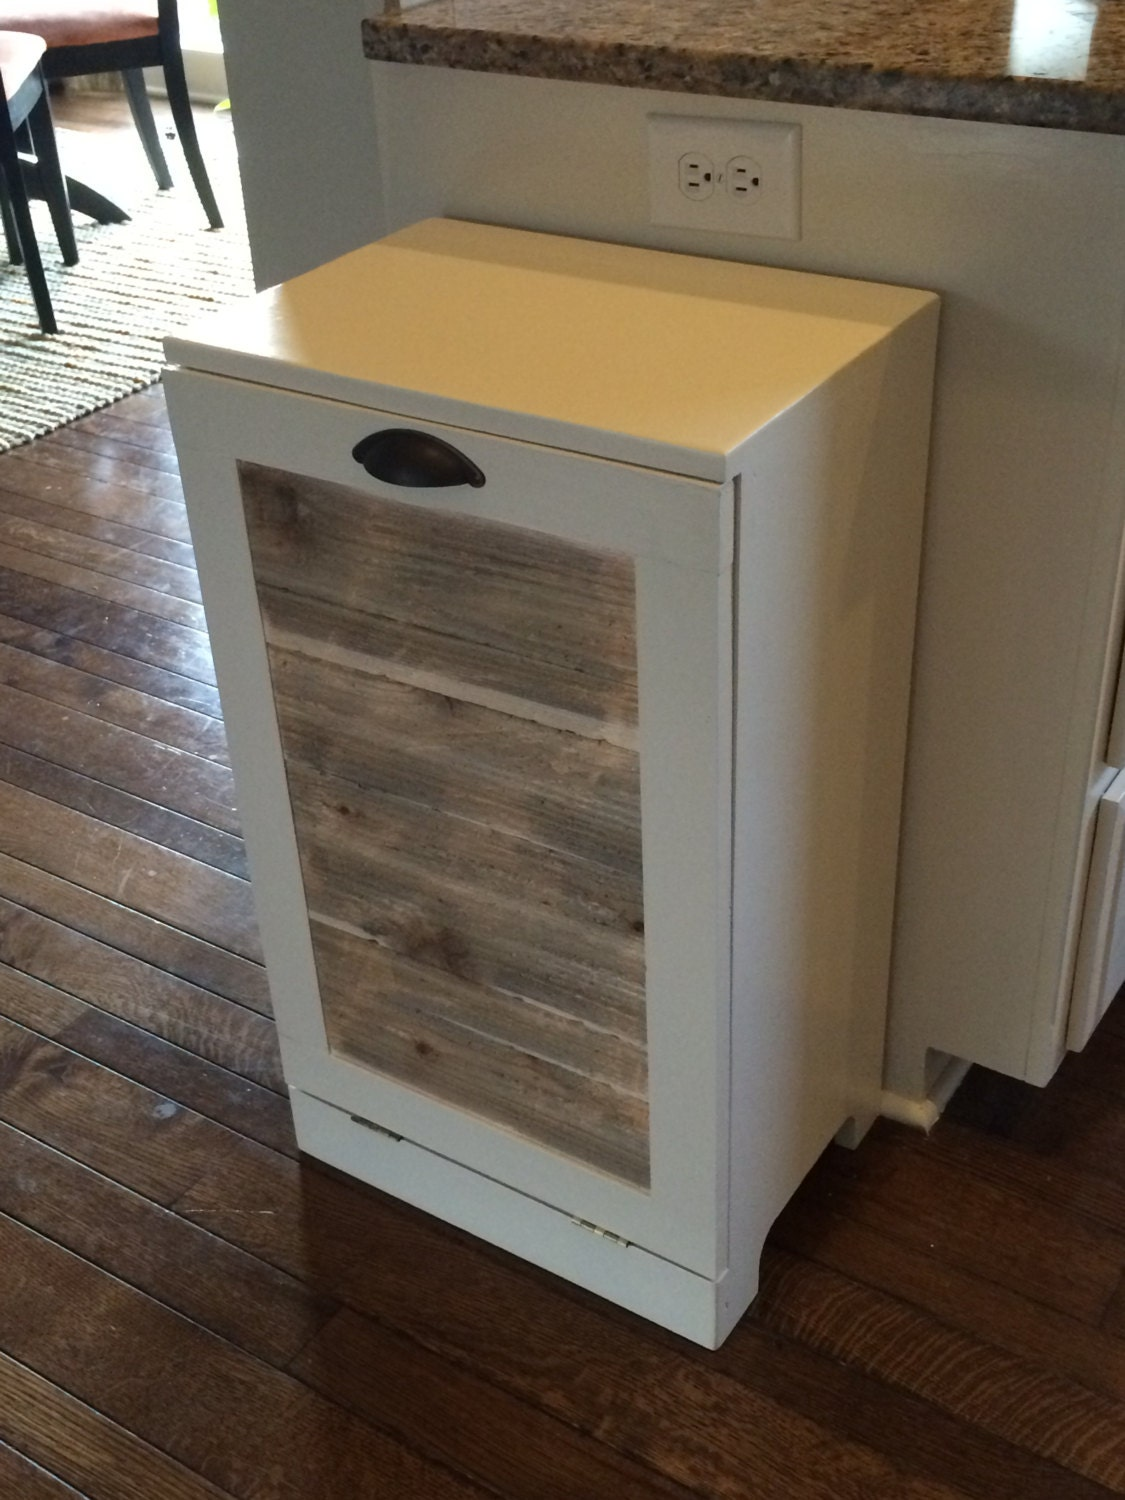 Rustic Tilt Out Trash Bin Reclaimed Wood By Lovemade14 On Etsy